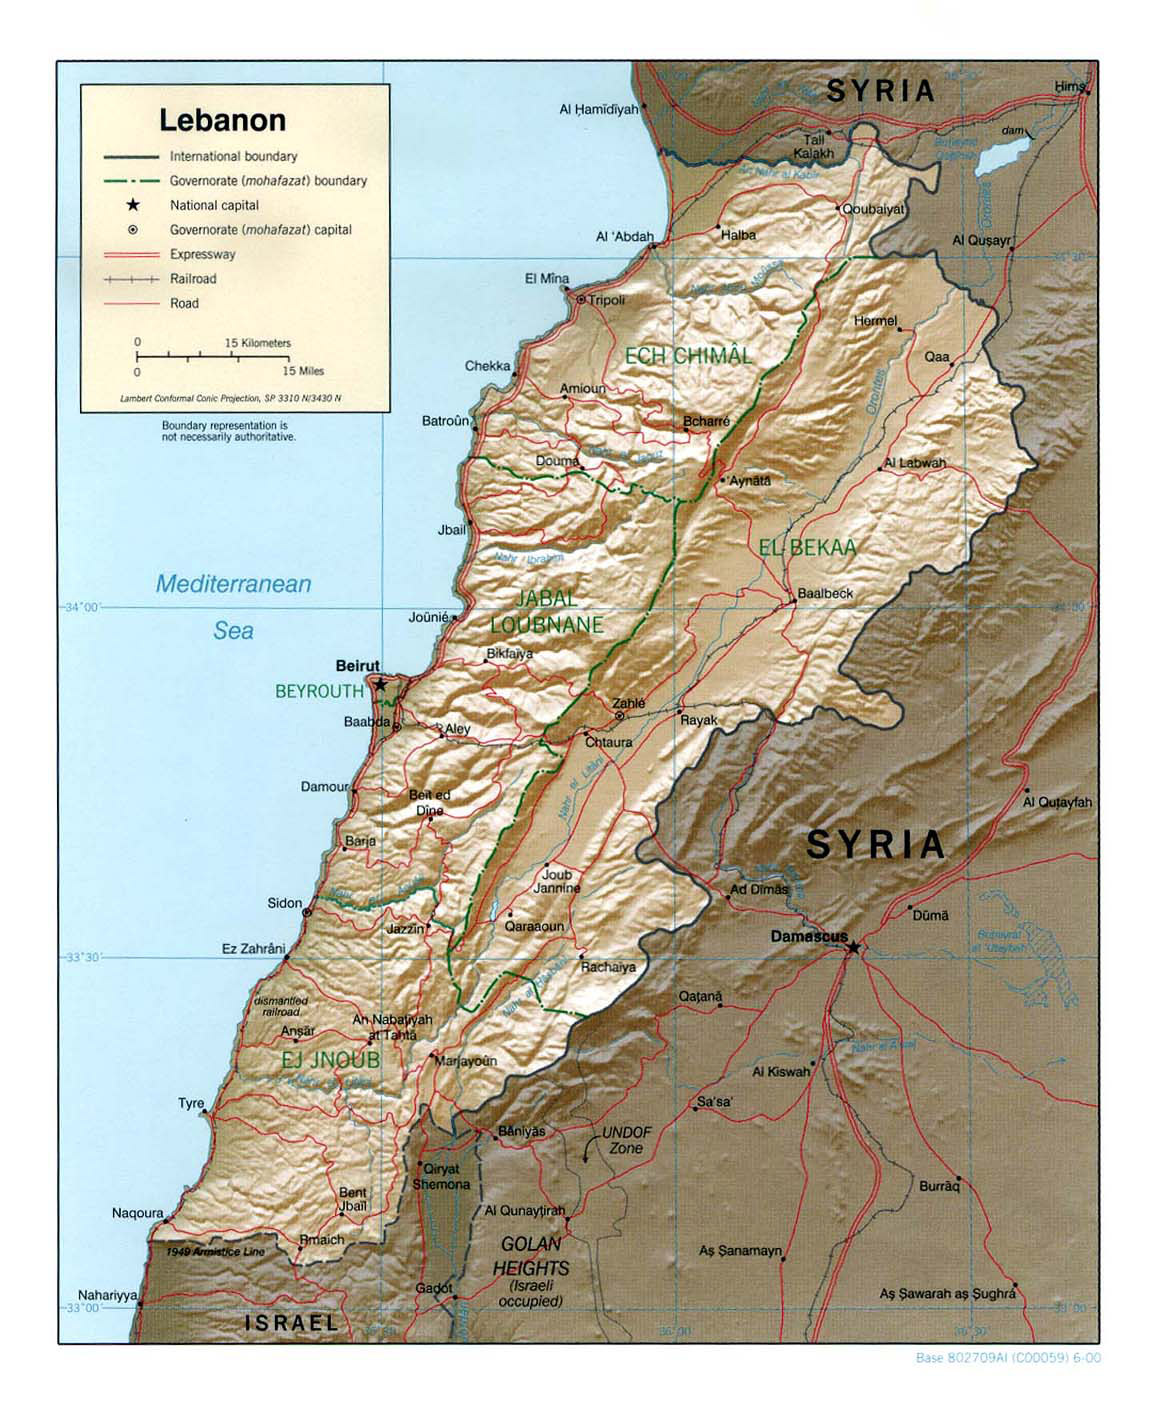 Large political and administrative map of Lebanon with relief roads